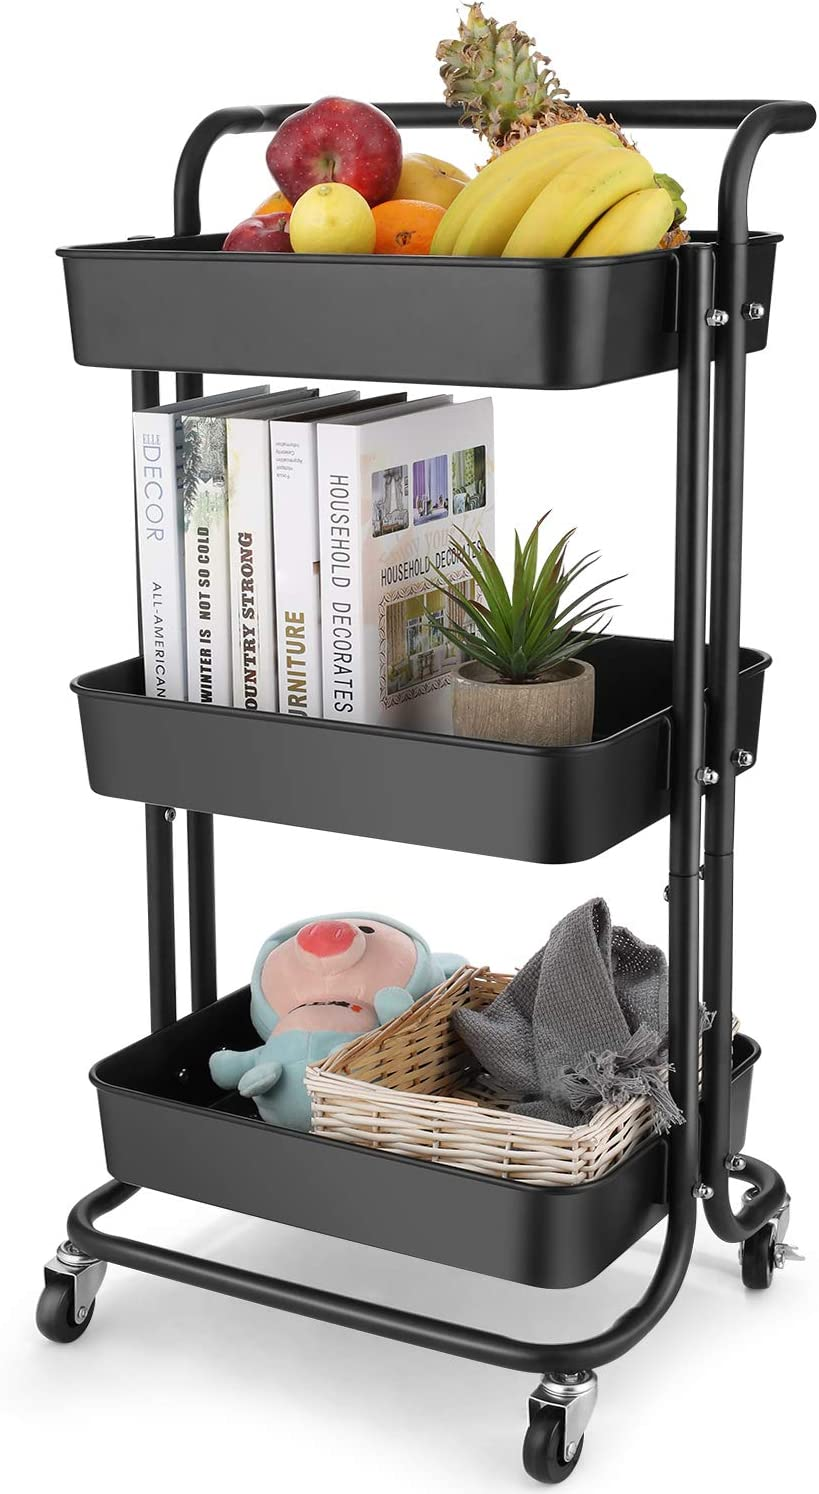 BATHWA 3-Tier Rolling Utility Cart Storage Shelves Multifunction Storage Trolley Service Cart with Mesh Basket Handles and Wheels Easy Assembly for Bathroom, Kitchen, Office (Black)